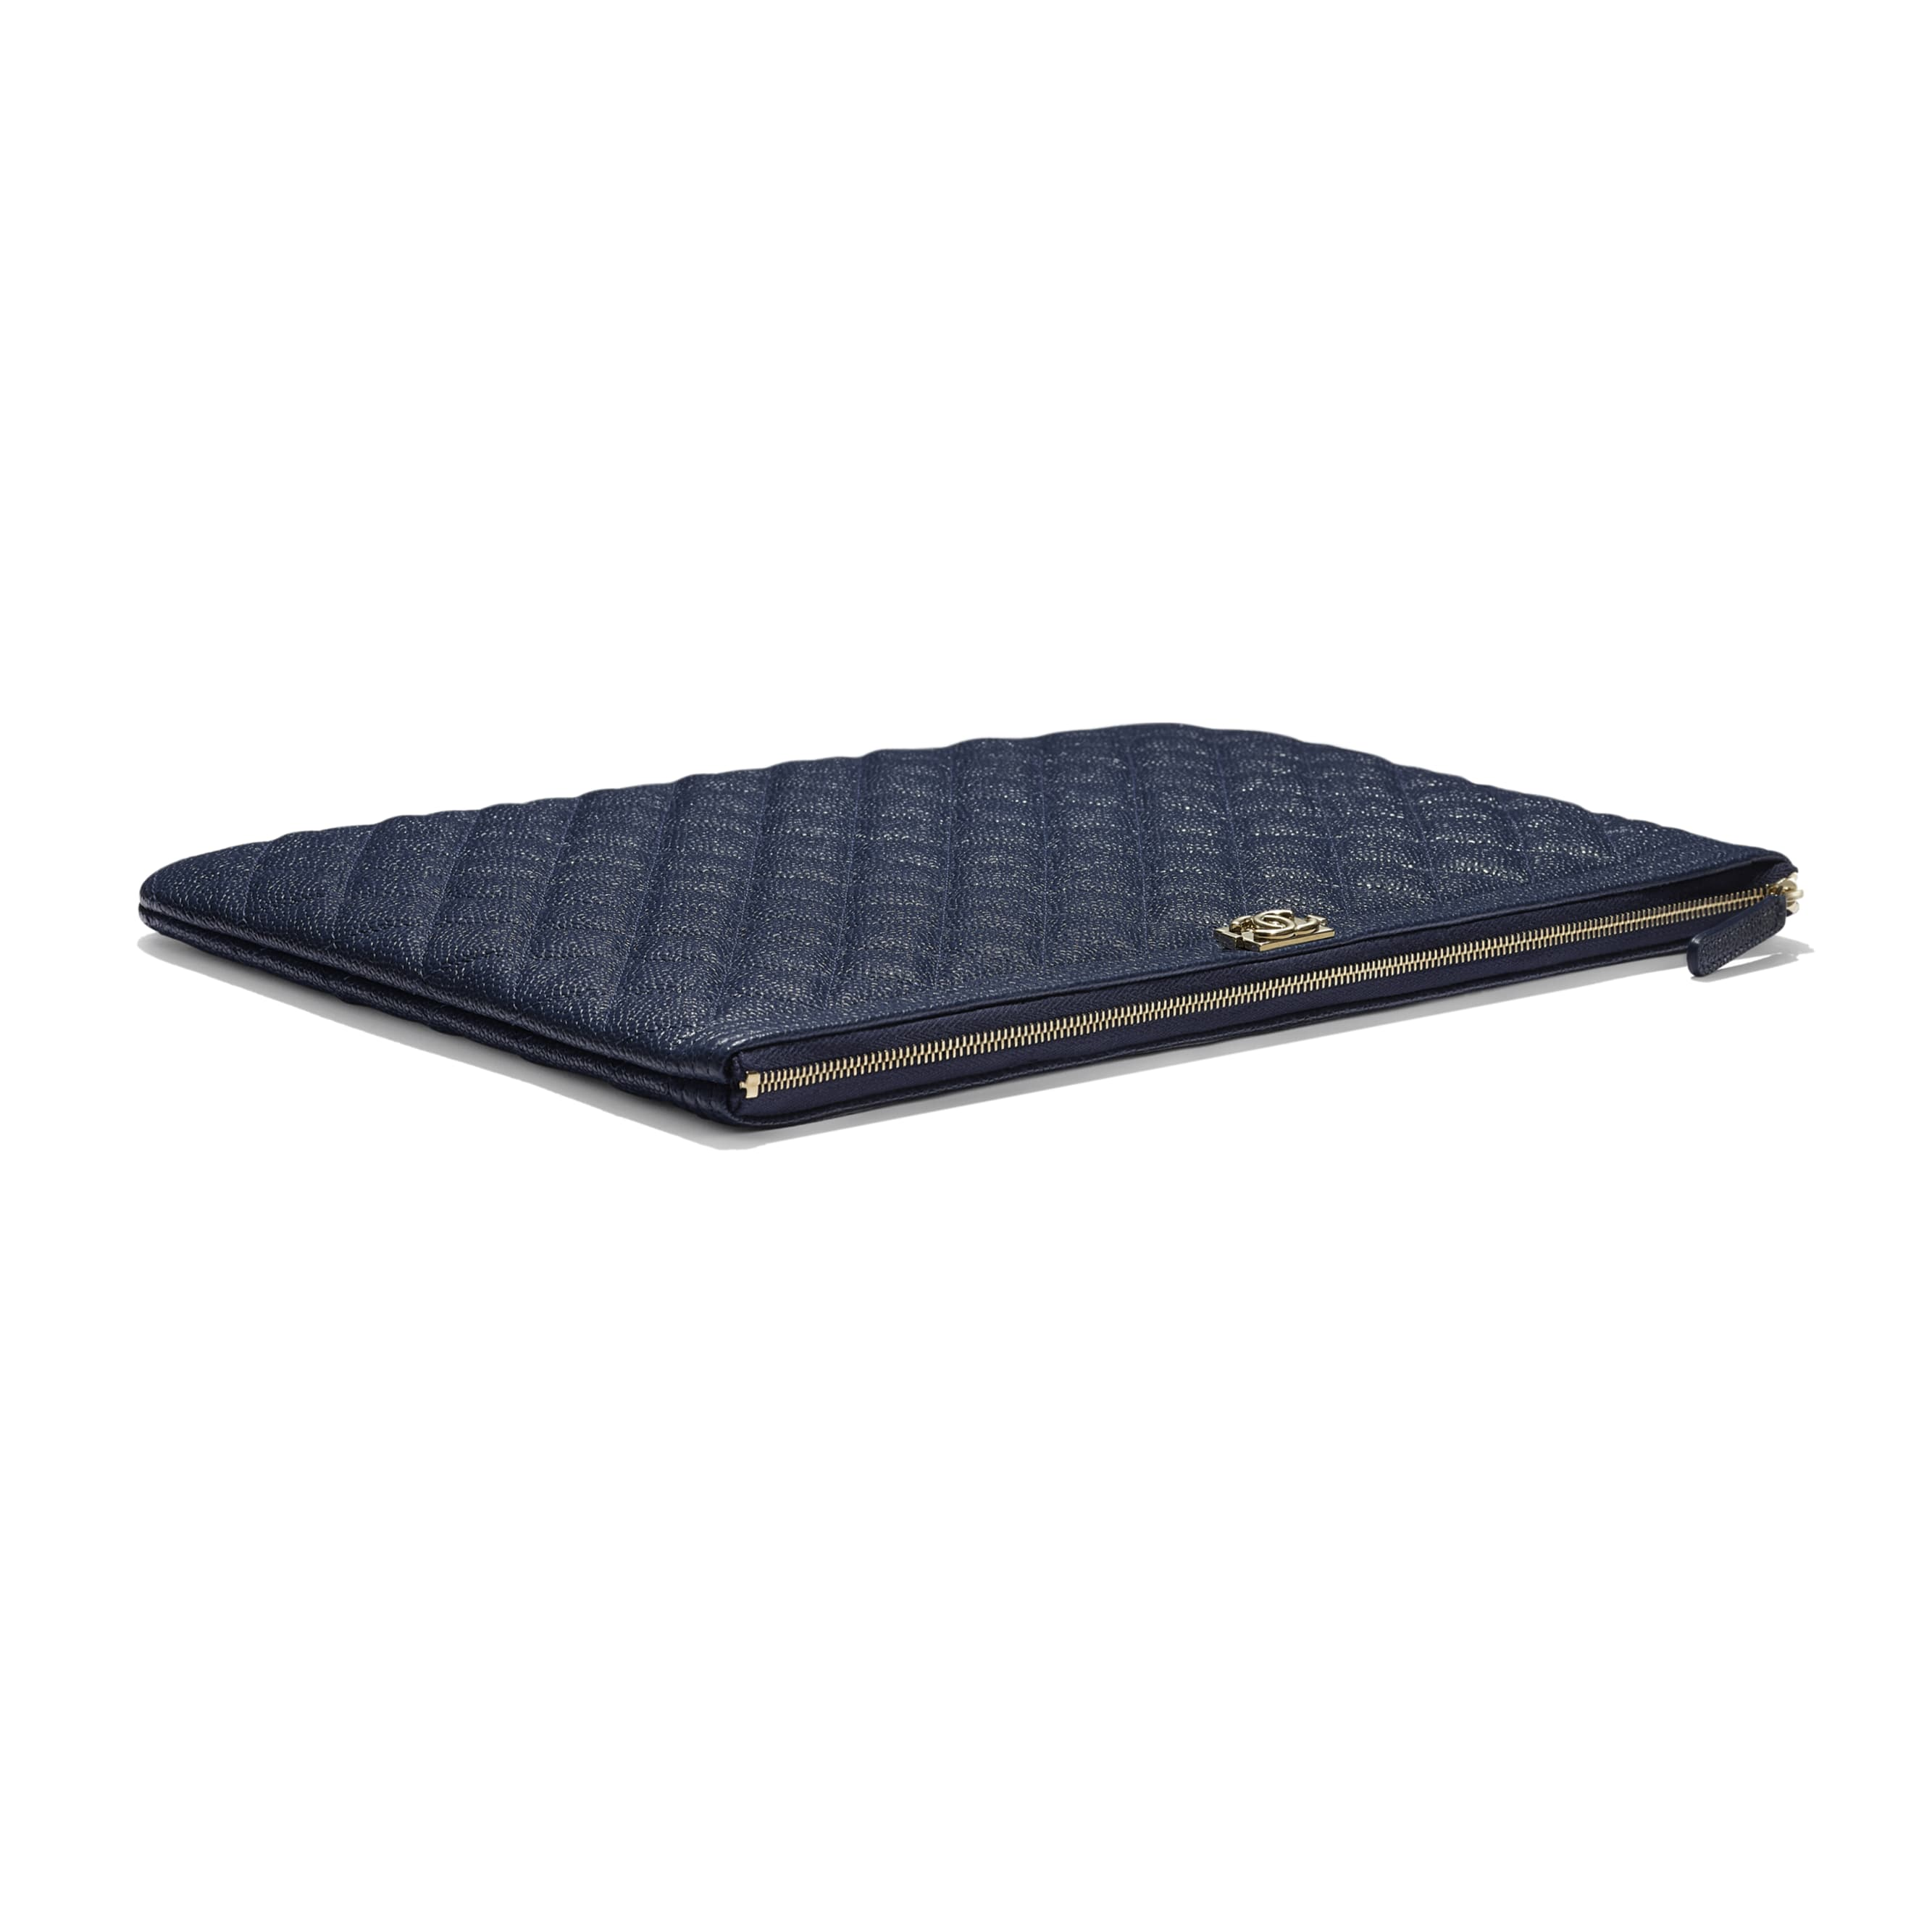 BOY CHANEL Large Pouch - Navy Blue - Grained Shiny Calfskin & Gold-Tone Metal - CHANEL - Extra view - see standard sized version